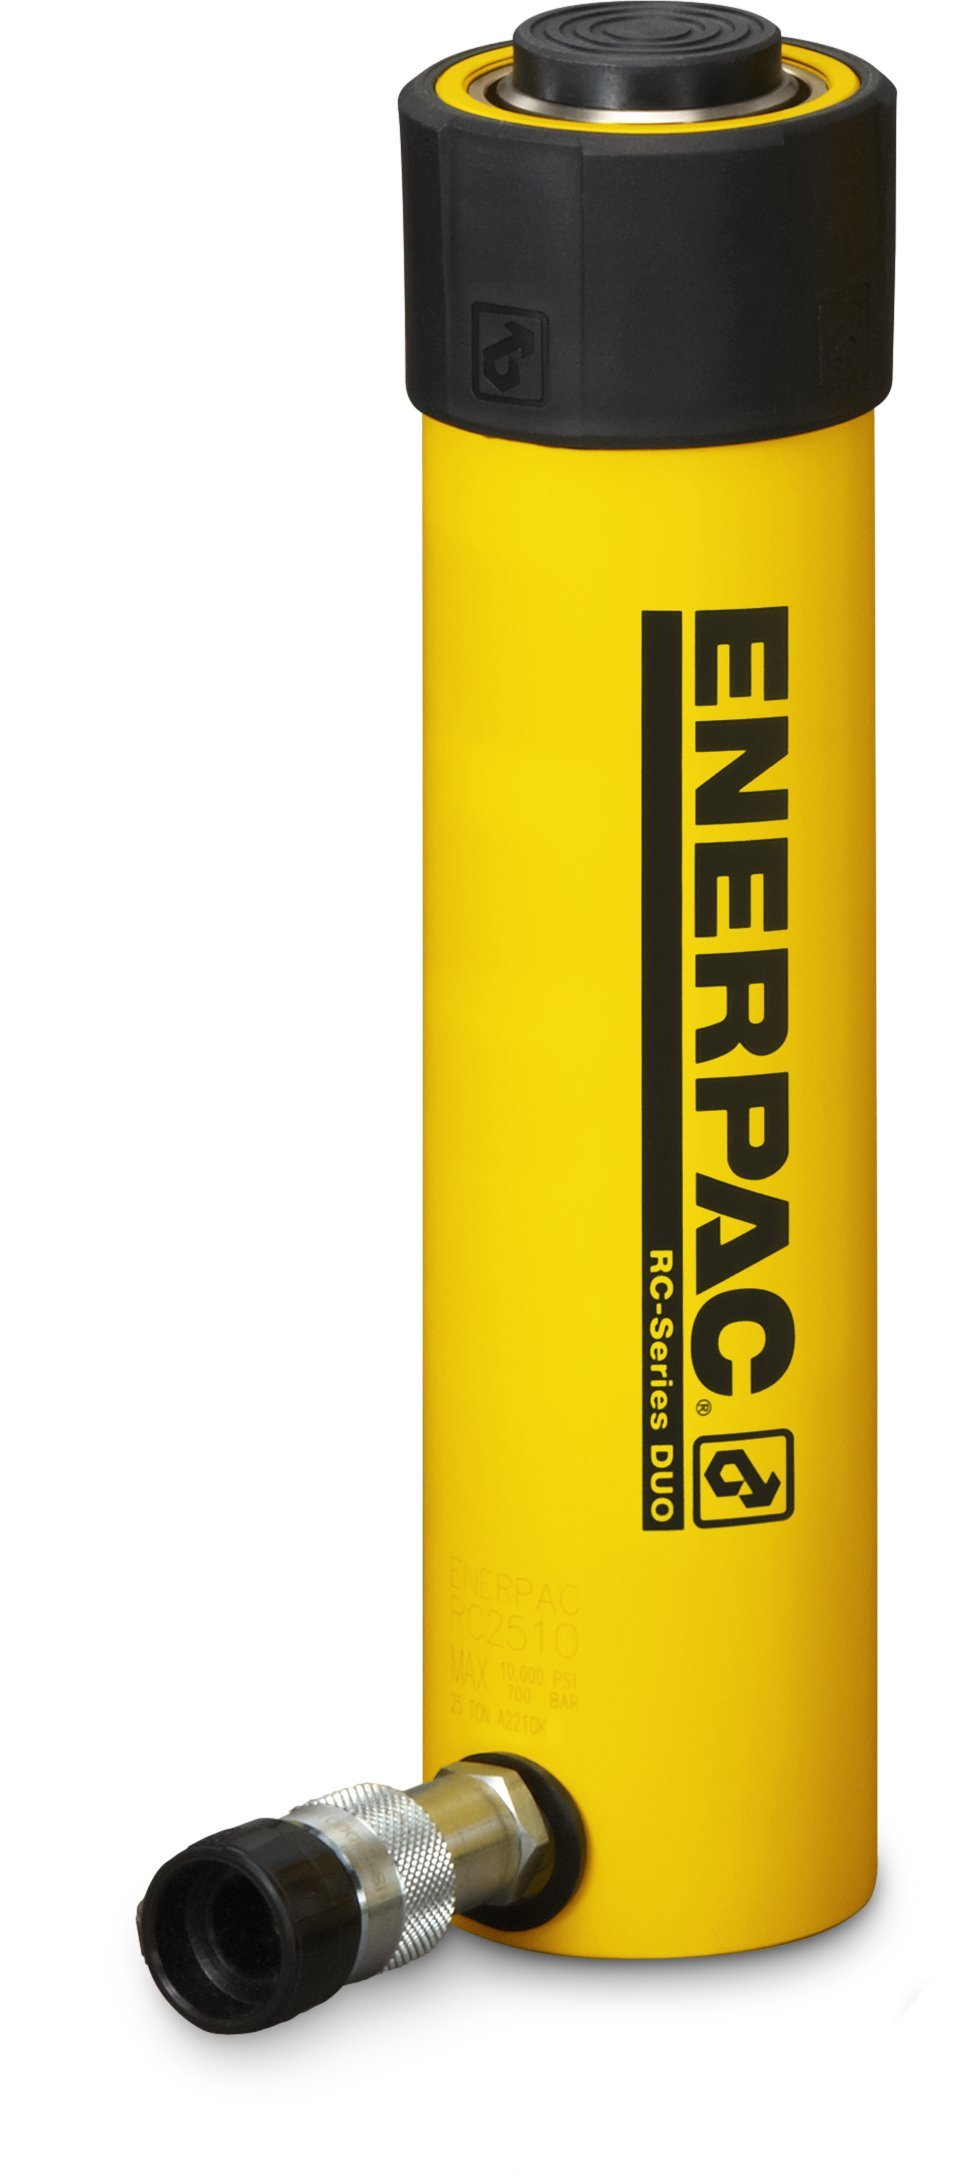 Enerpac RC-2510 Single-Acting Alloy Steel Hydraulic Cylinder with 25 Ton Capacity, Single Port, 10.25'' Stroke by Enerpac